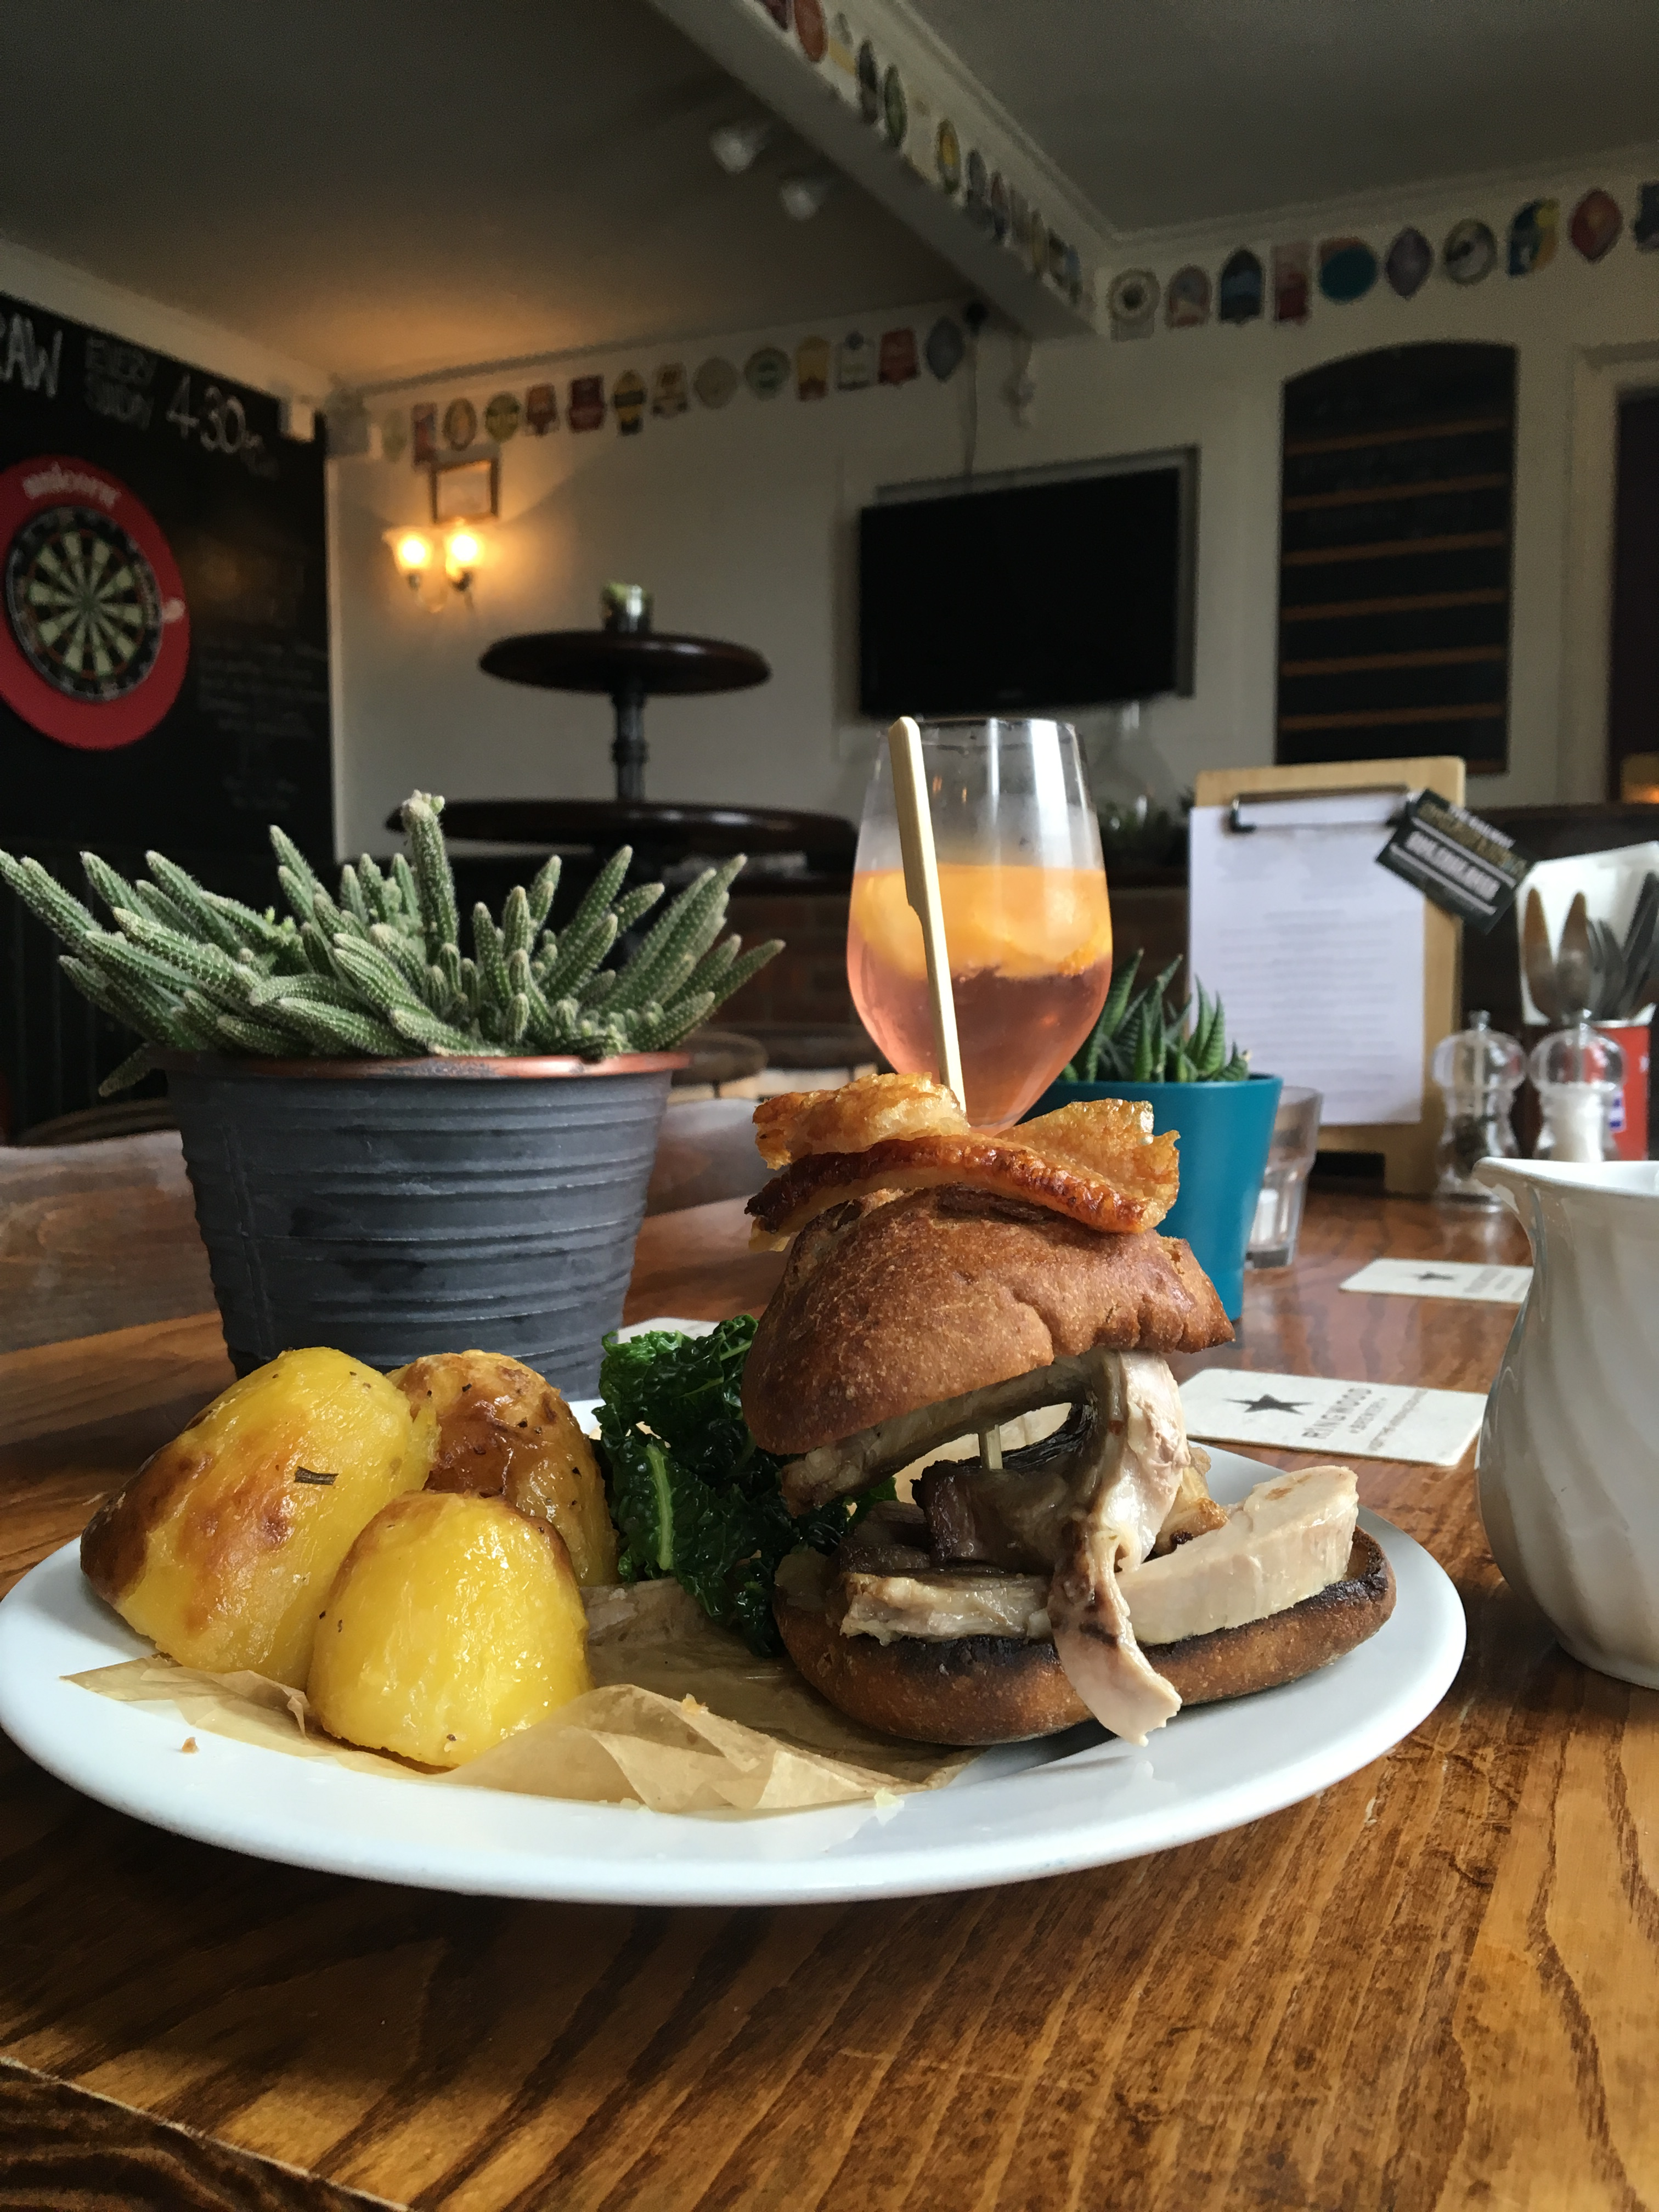 Roast Dinner Burger, Railway Crfat beer Pub and Kitchen Ringwood New Forest